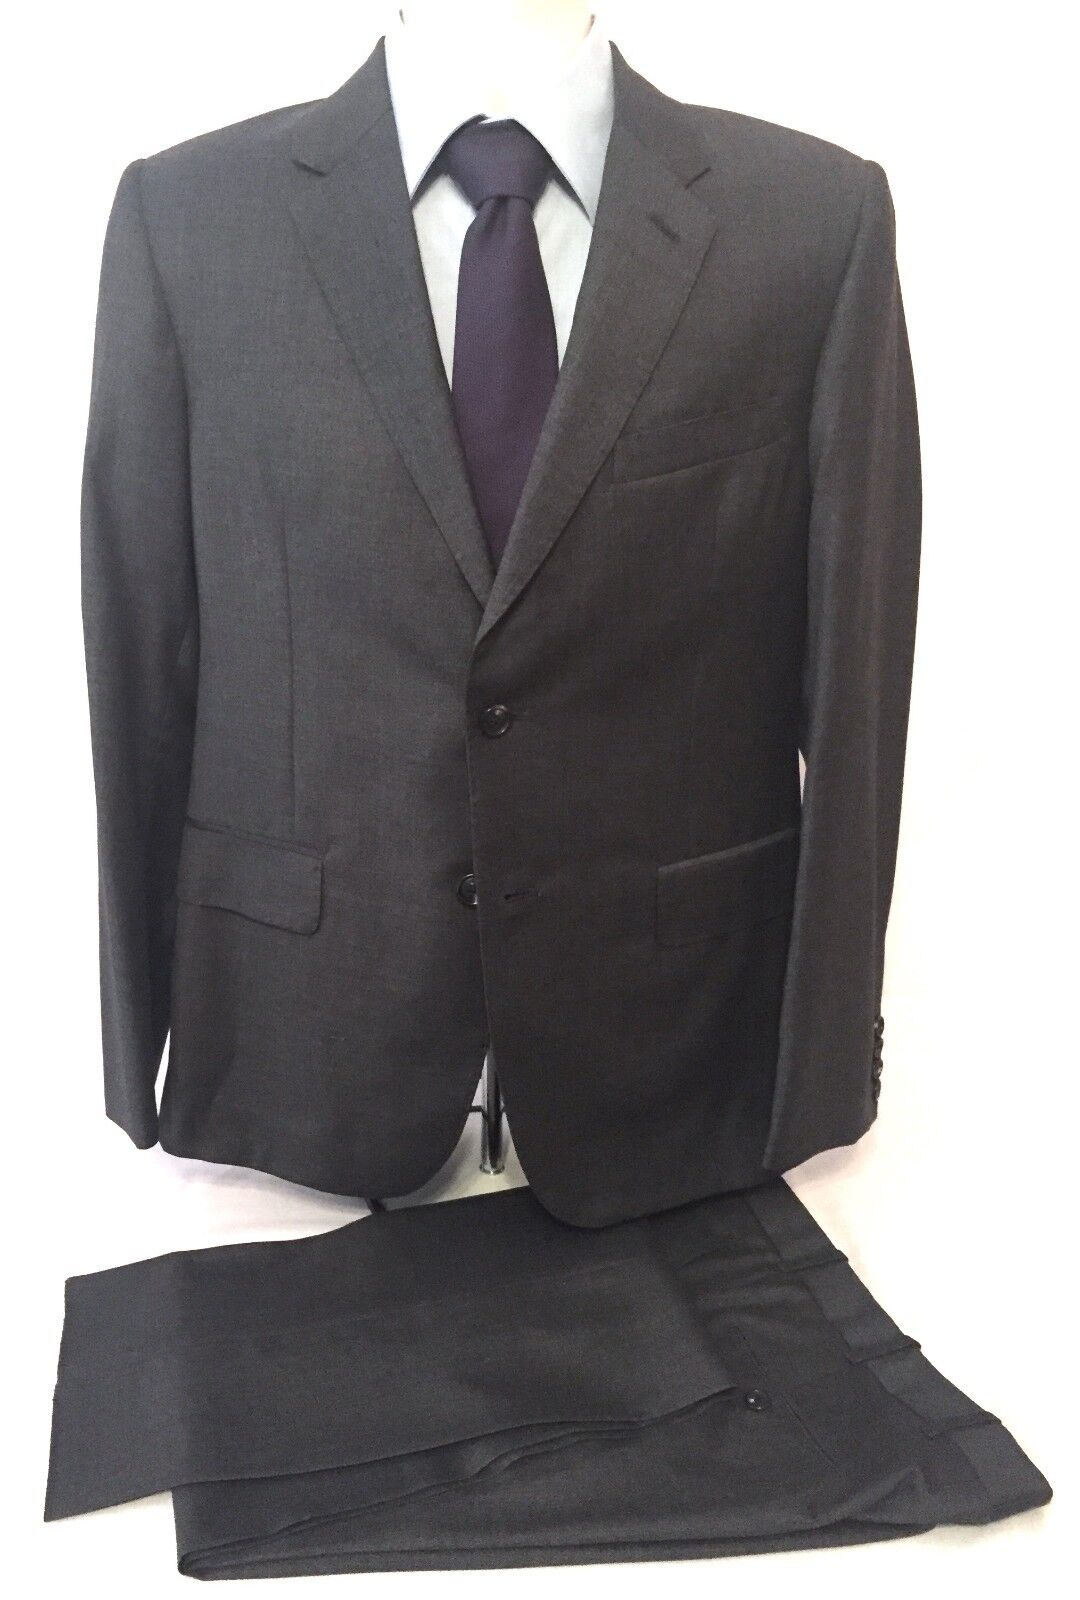 NWT 2.3K Martin Grünfield HANDMADE IN USA Charcoal grau Wool Suit 38 AUTHENTIC